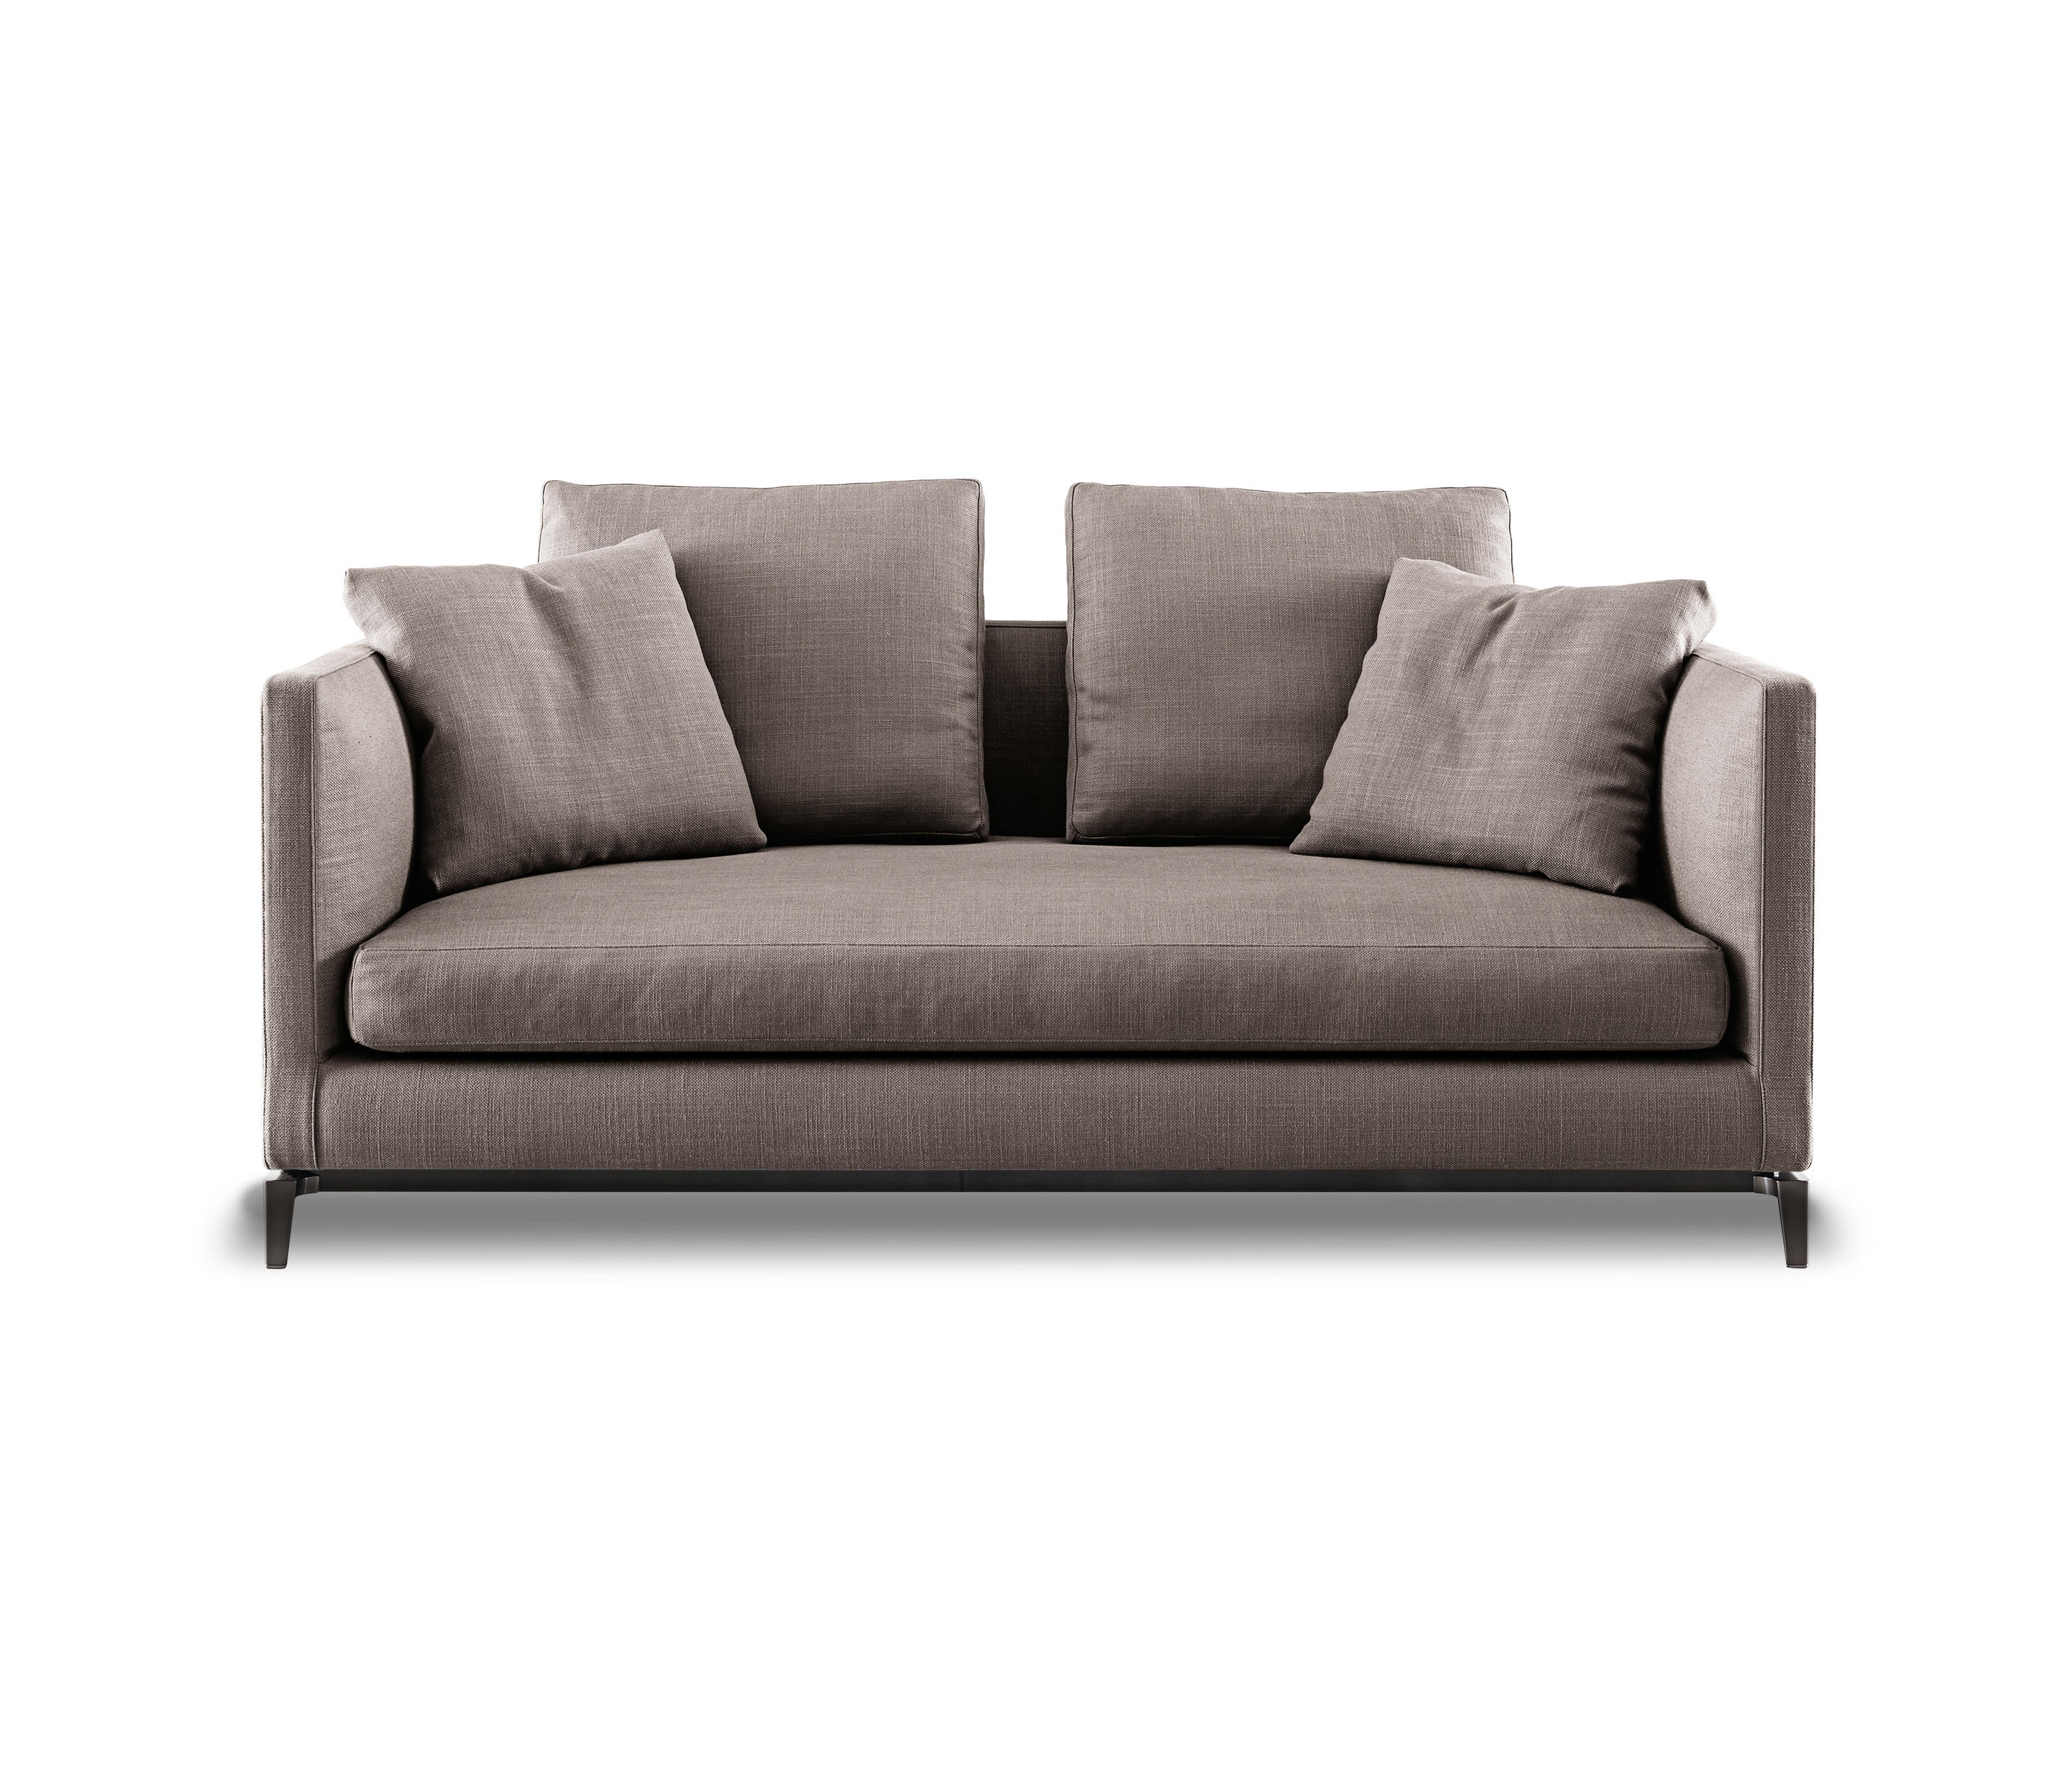 andersen slim 90 sofas from minotti architonic rh architonic com Minotti Italian Furniture Minotti Table